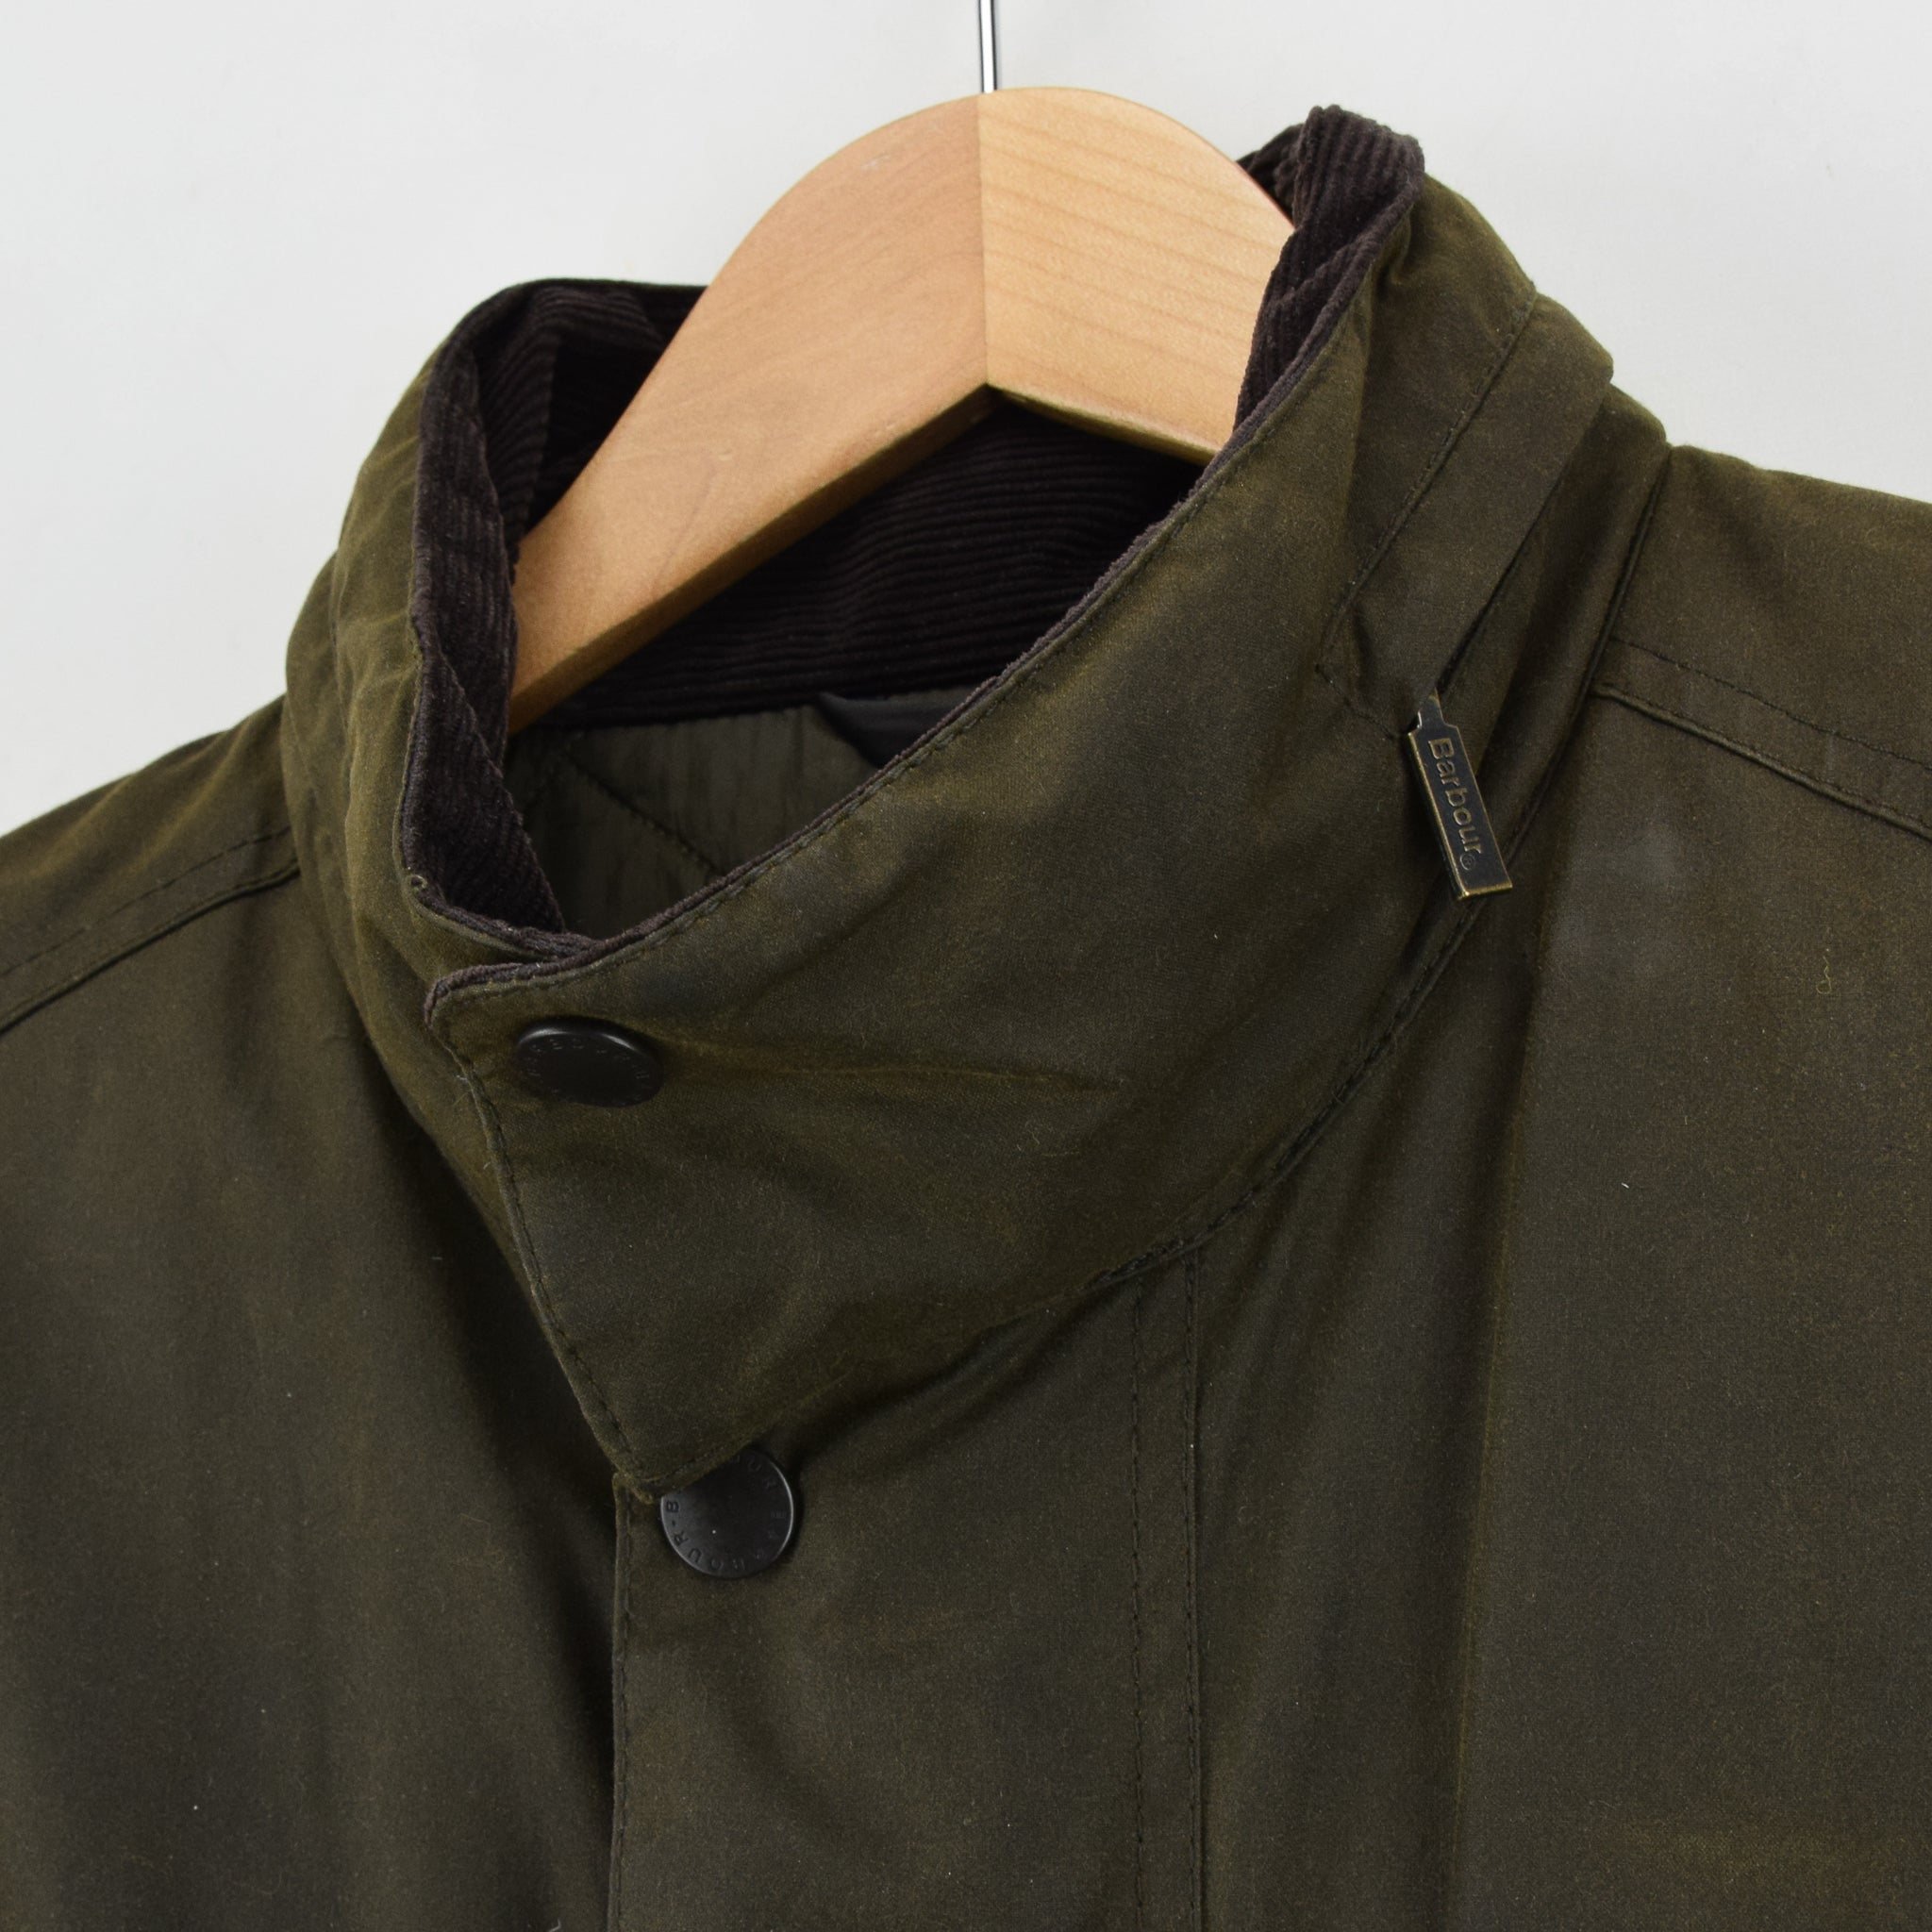 Barbour A342 Sapper Olive Green Wax Jacket Army Style Coat L collar